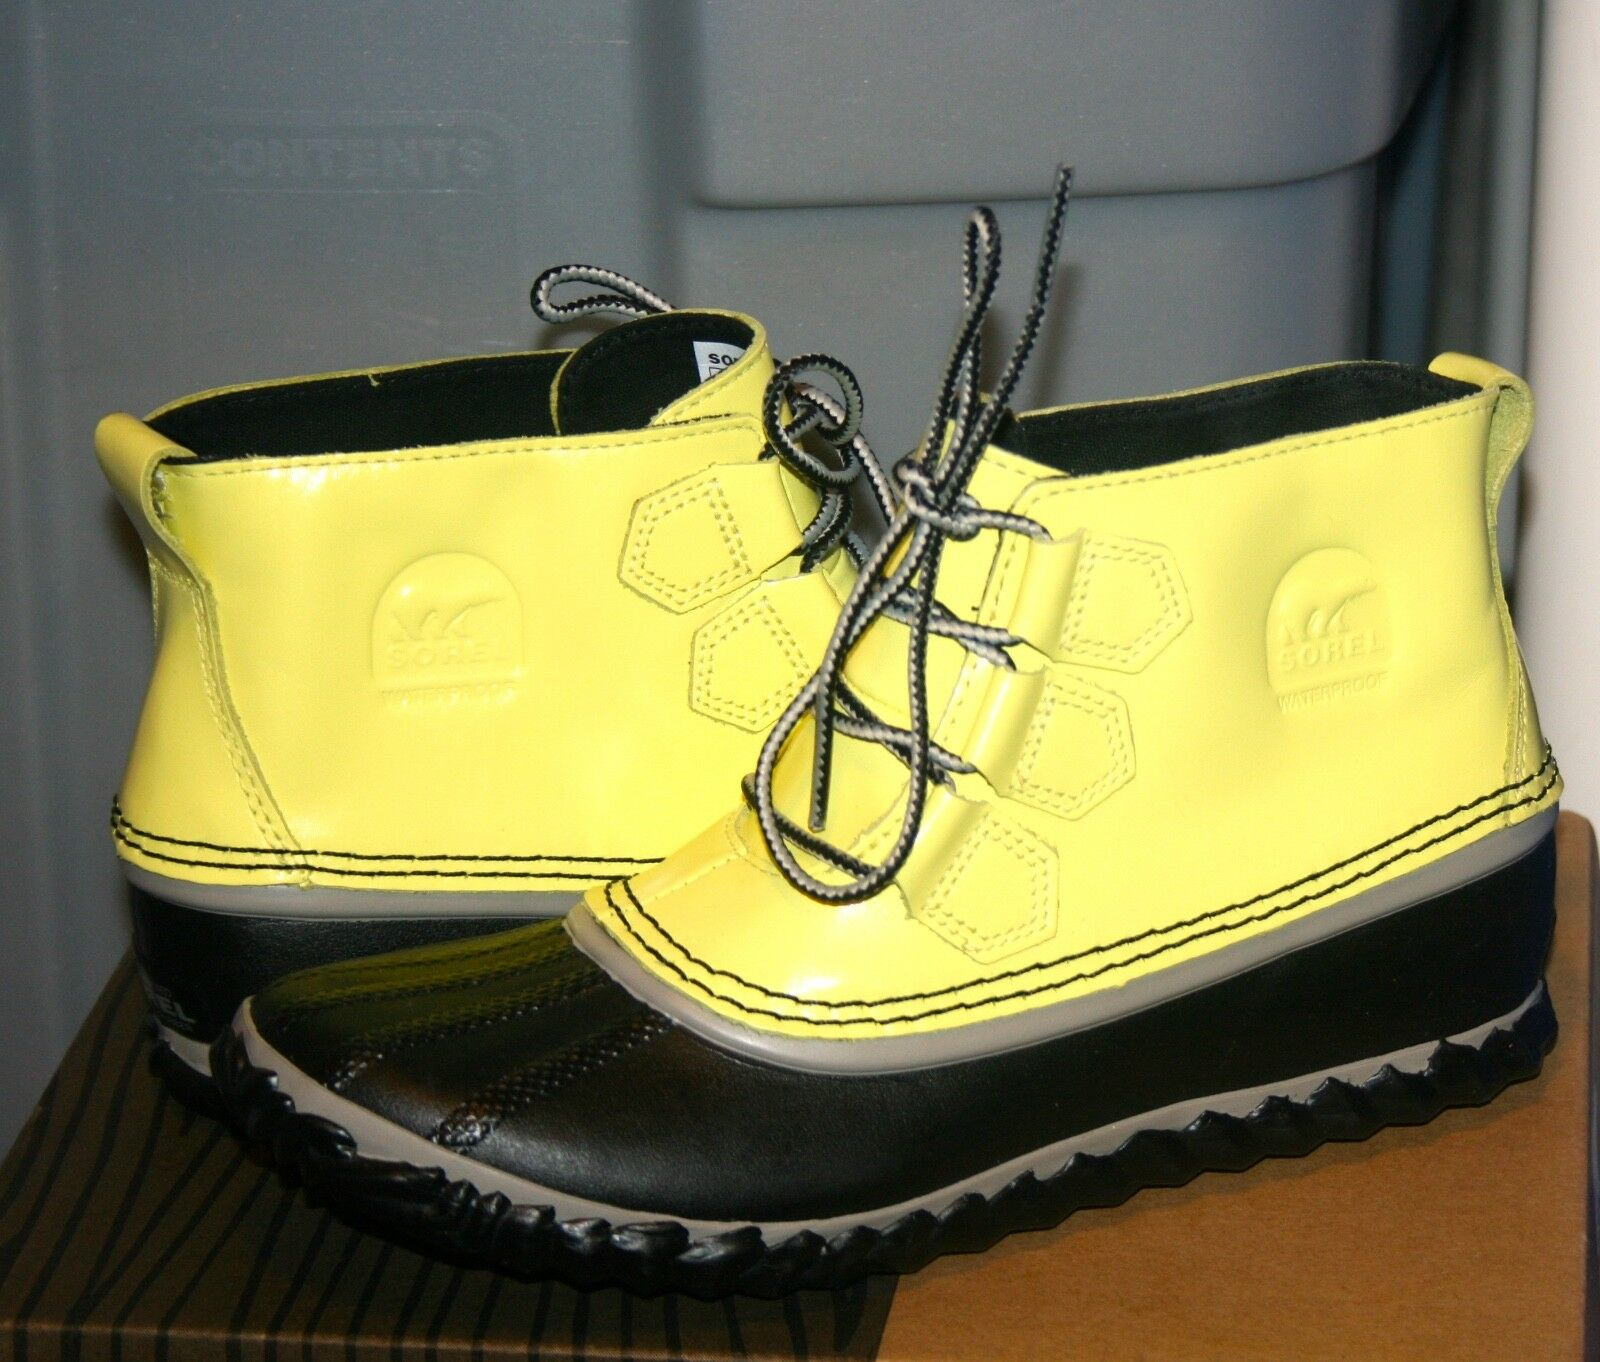 SOREL OUT N ABOUT US RAIN US ABOUT 7 EU 38 Woman's Waterproof Zest Yellow 2afdf8